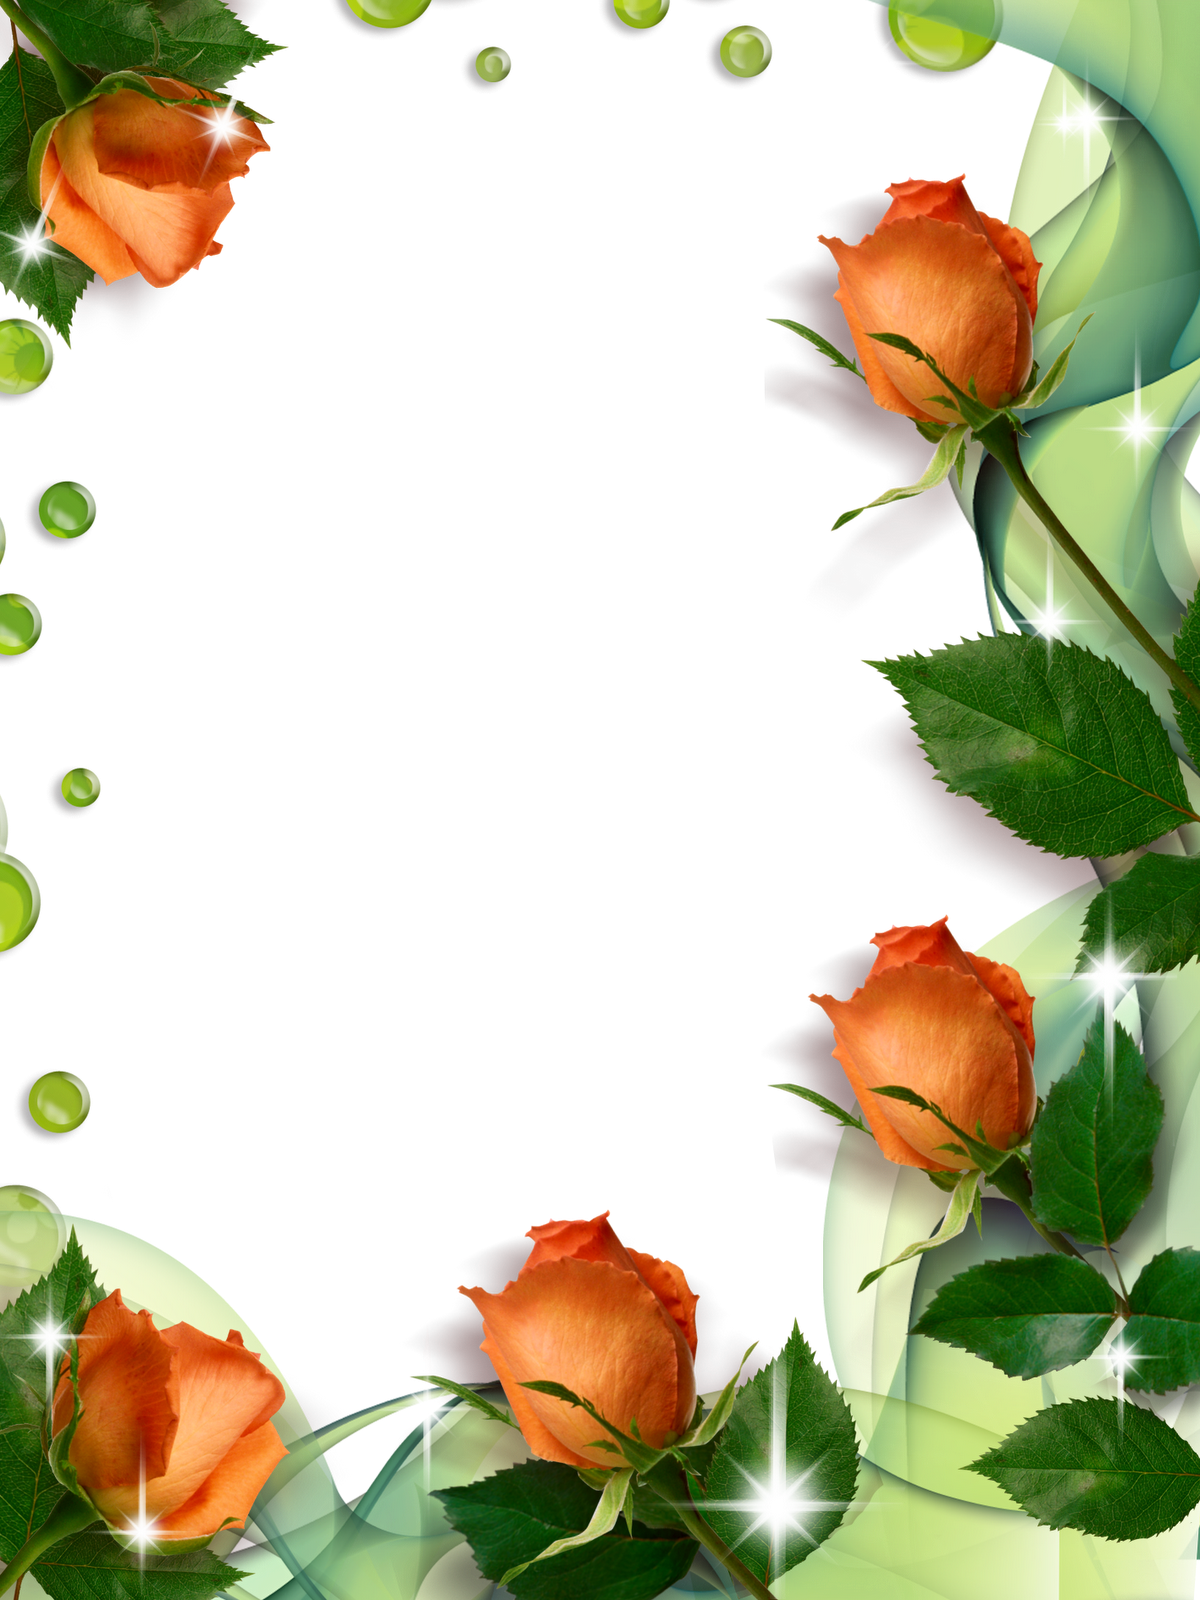 Vertical flower border clipart clipart library Pin by Emagrecer com vida e saúde on ☆ Frαмєs ☆ | Pinterest ... clipart library